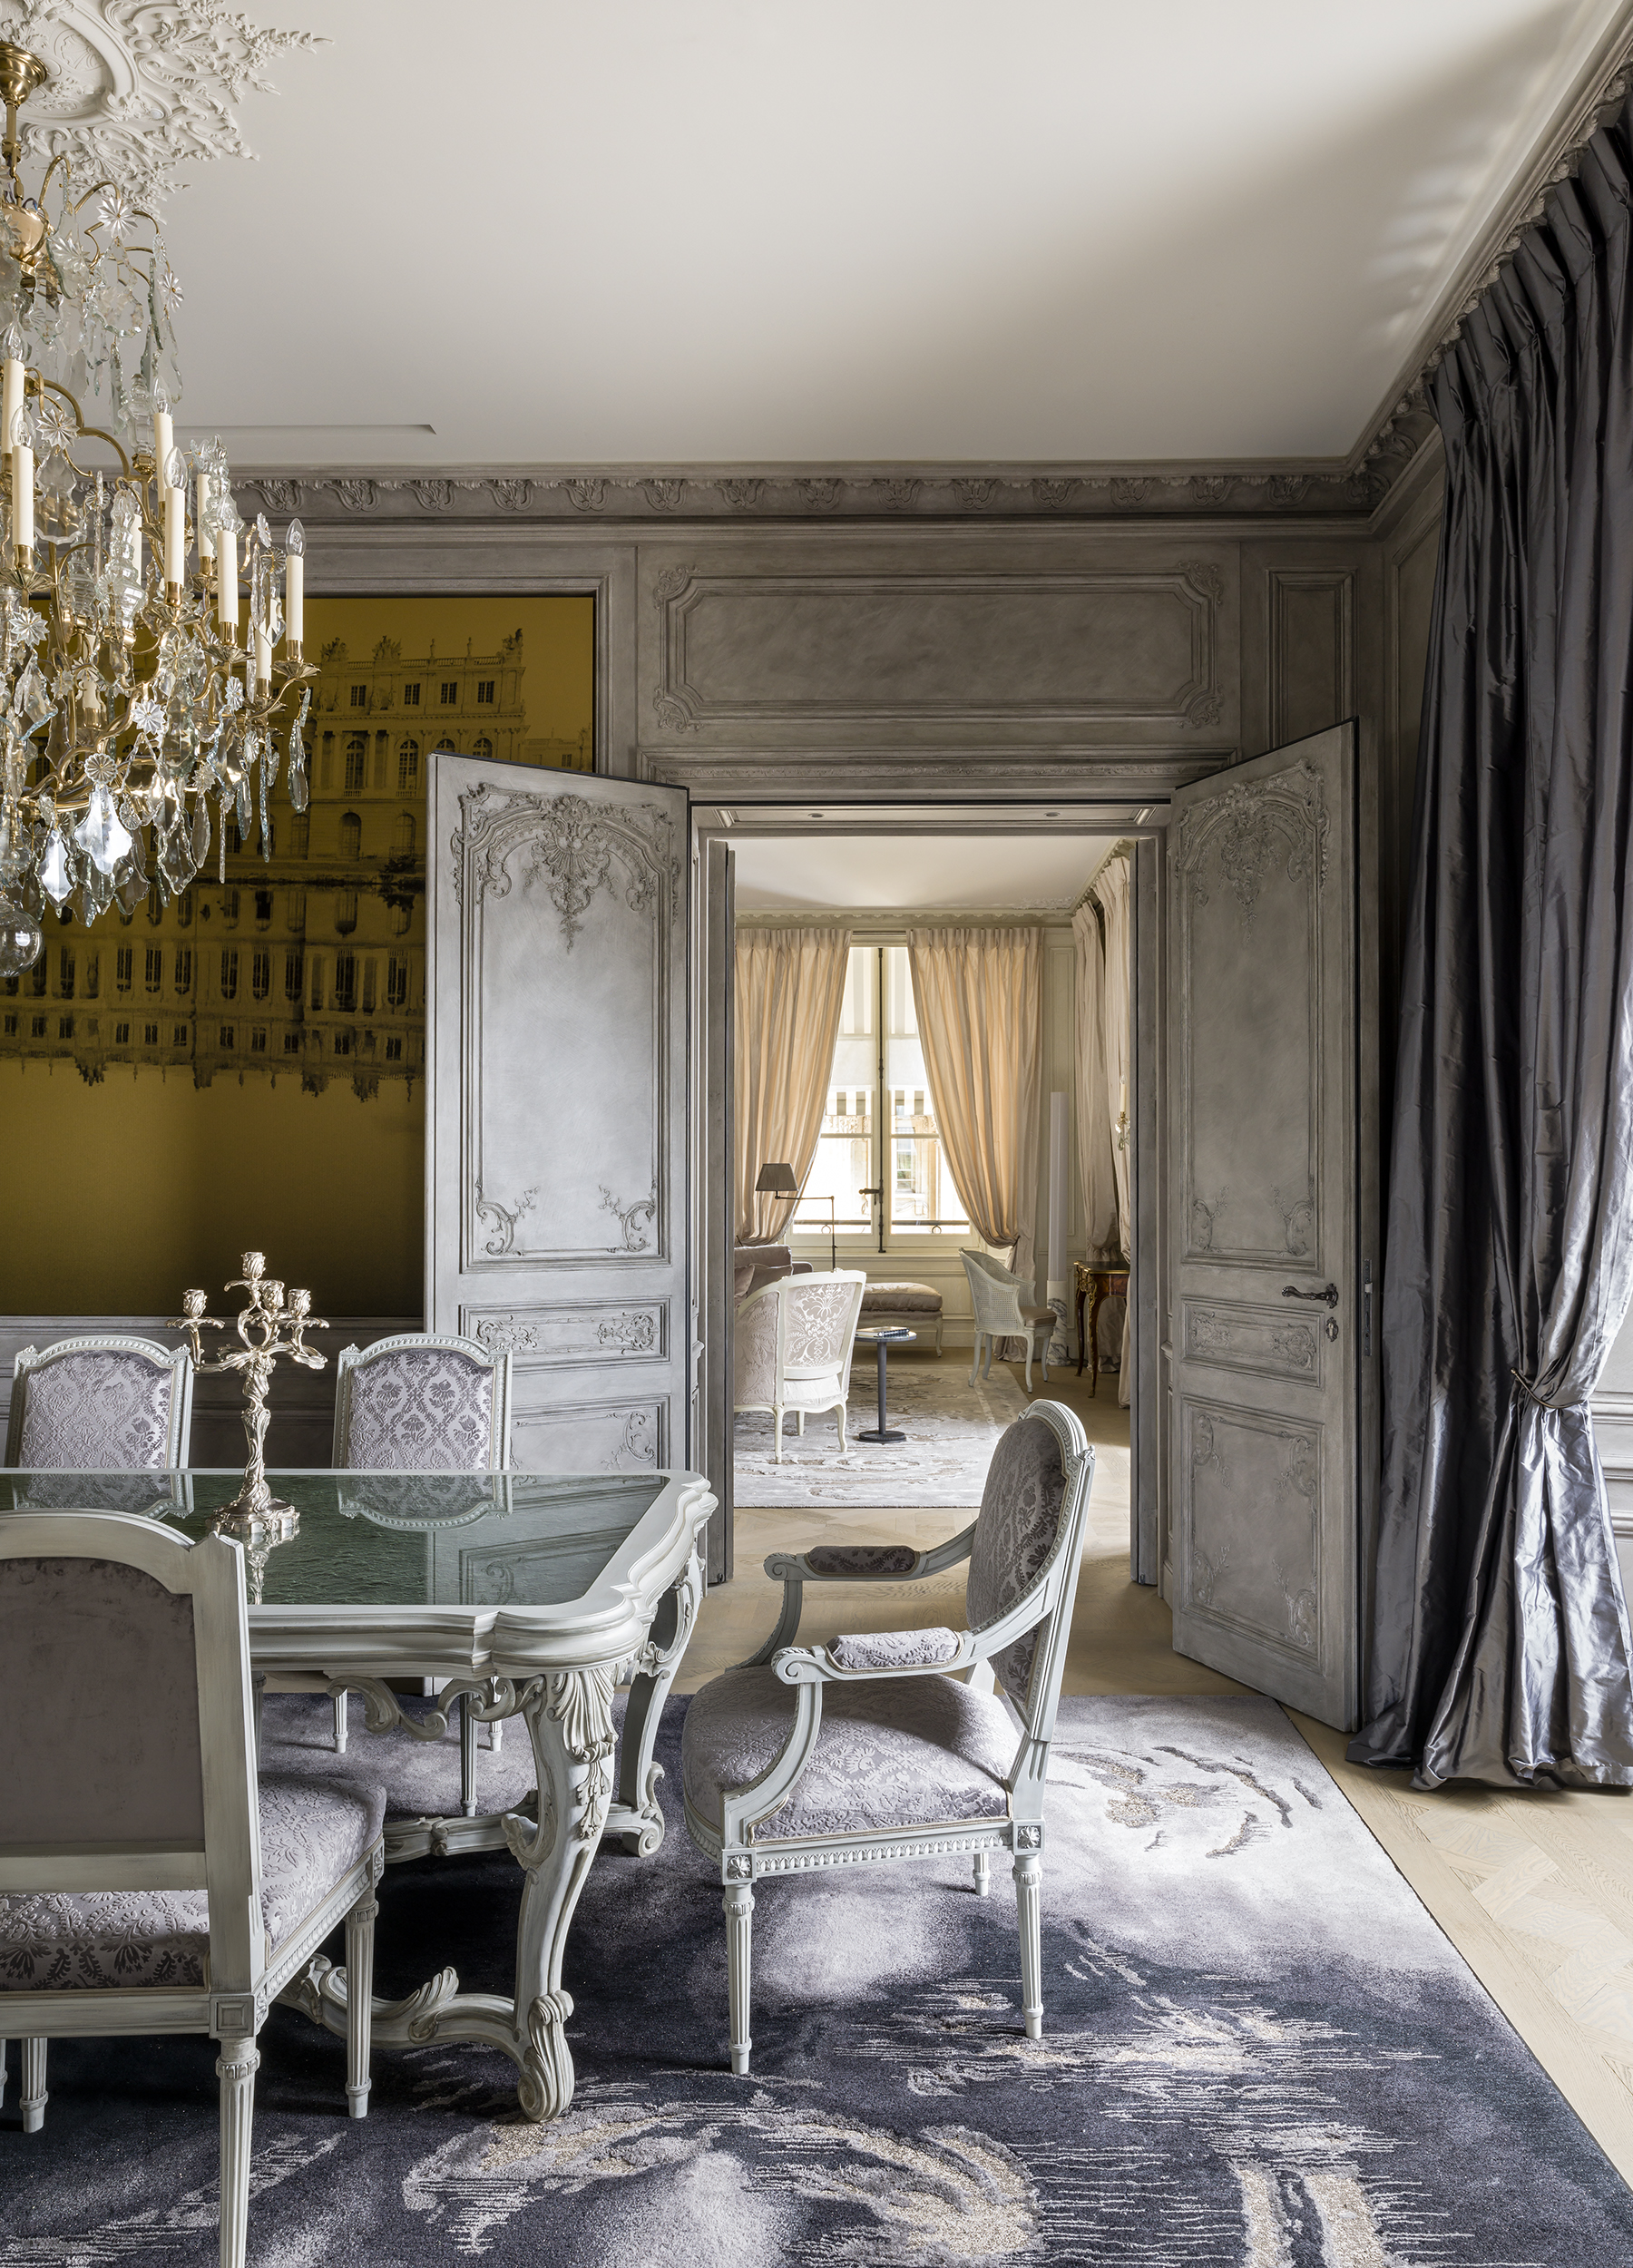 Hôtel de Crillon dining room, Karl Lagerfeld, wall paneling, cornices